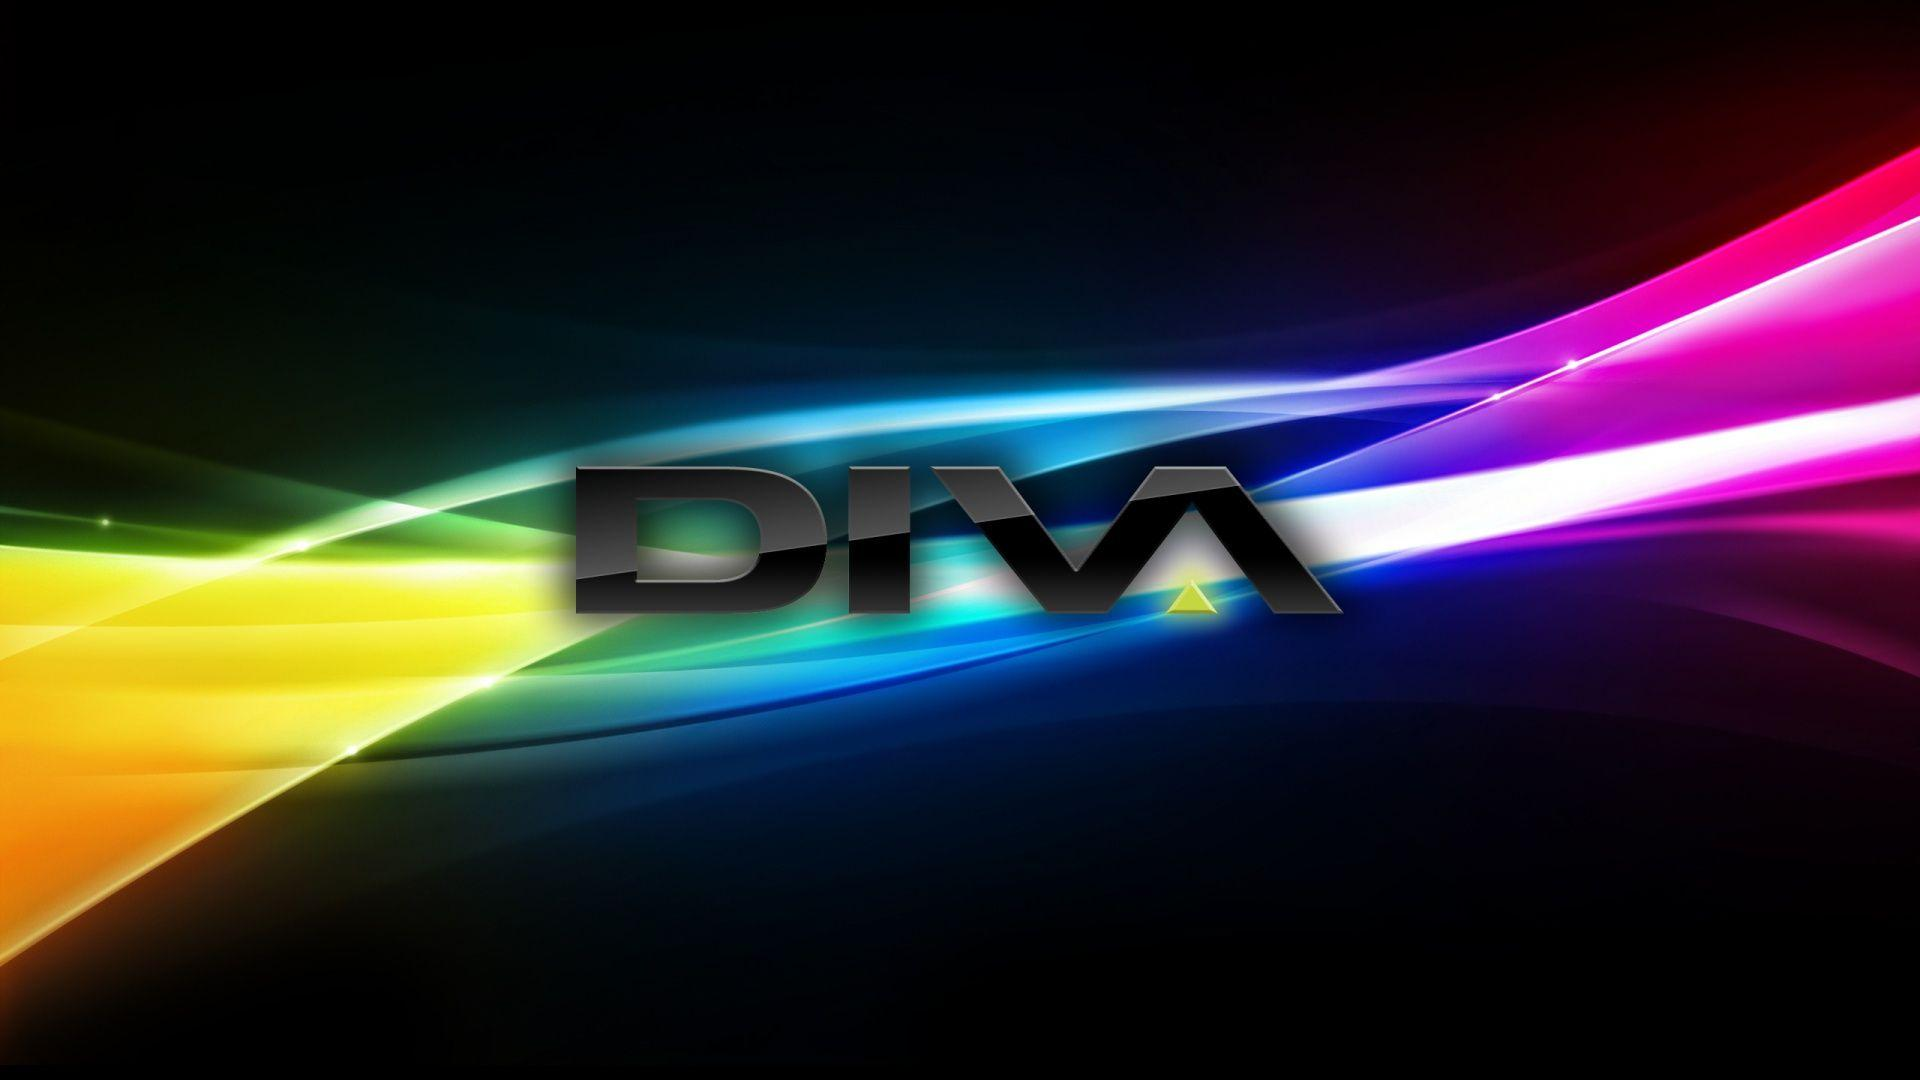 wallpapers diva wallpaper cave